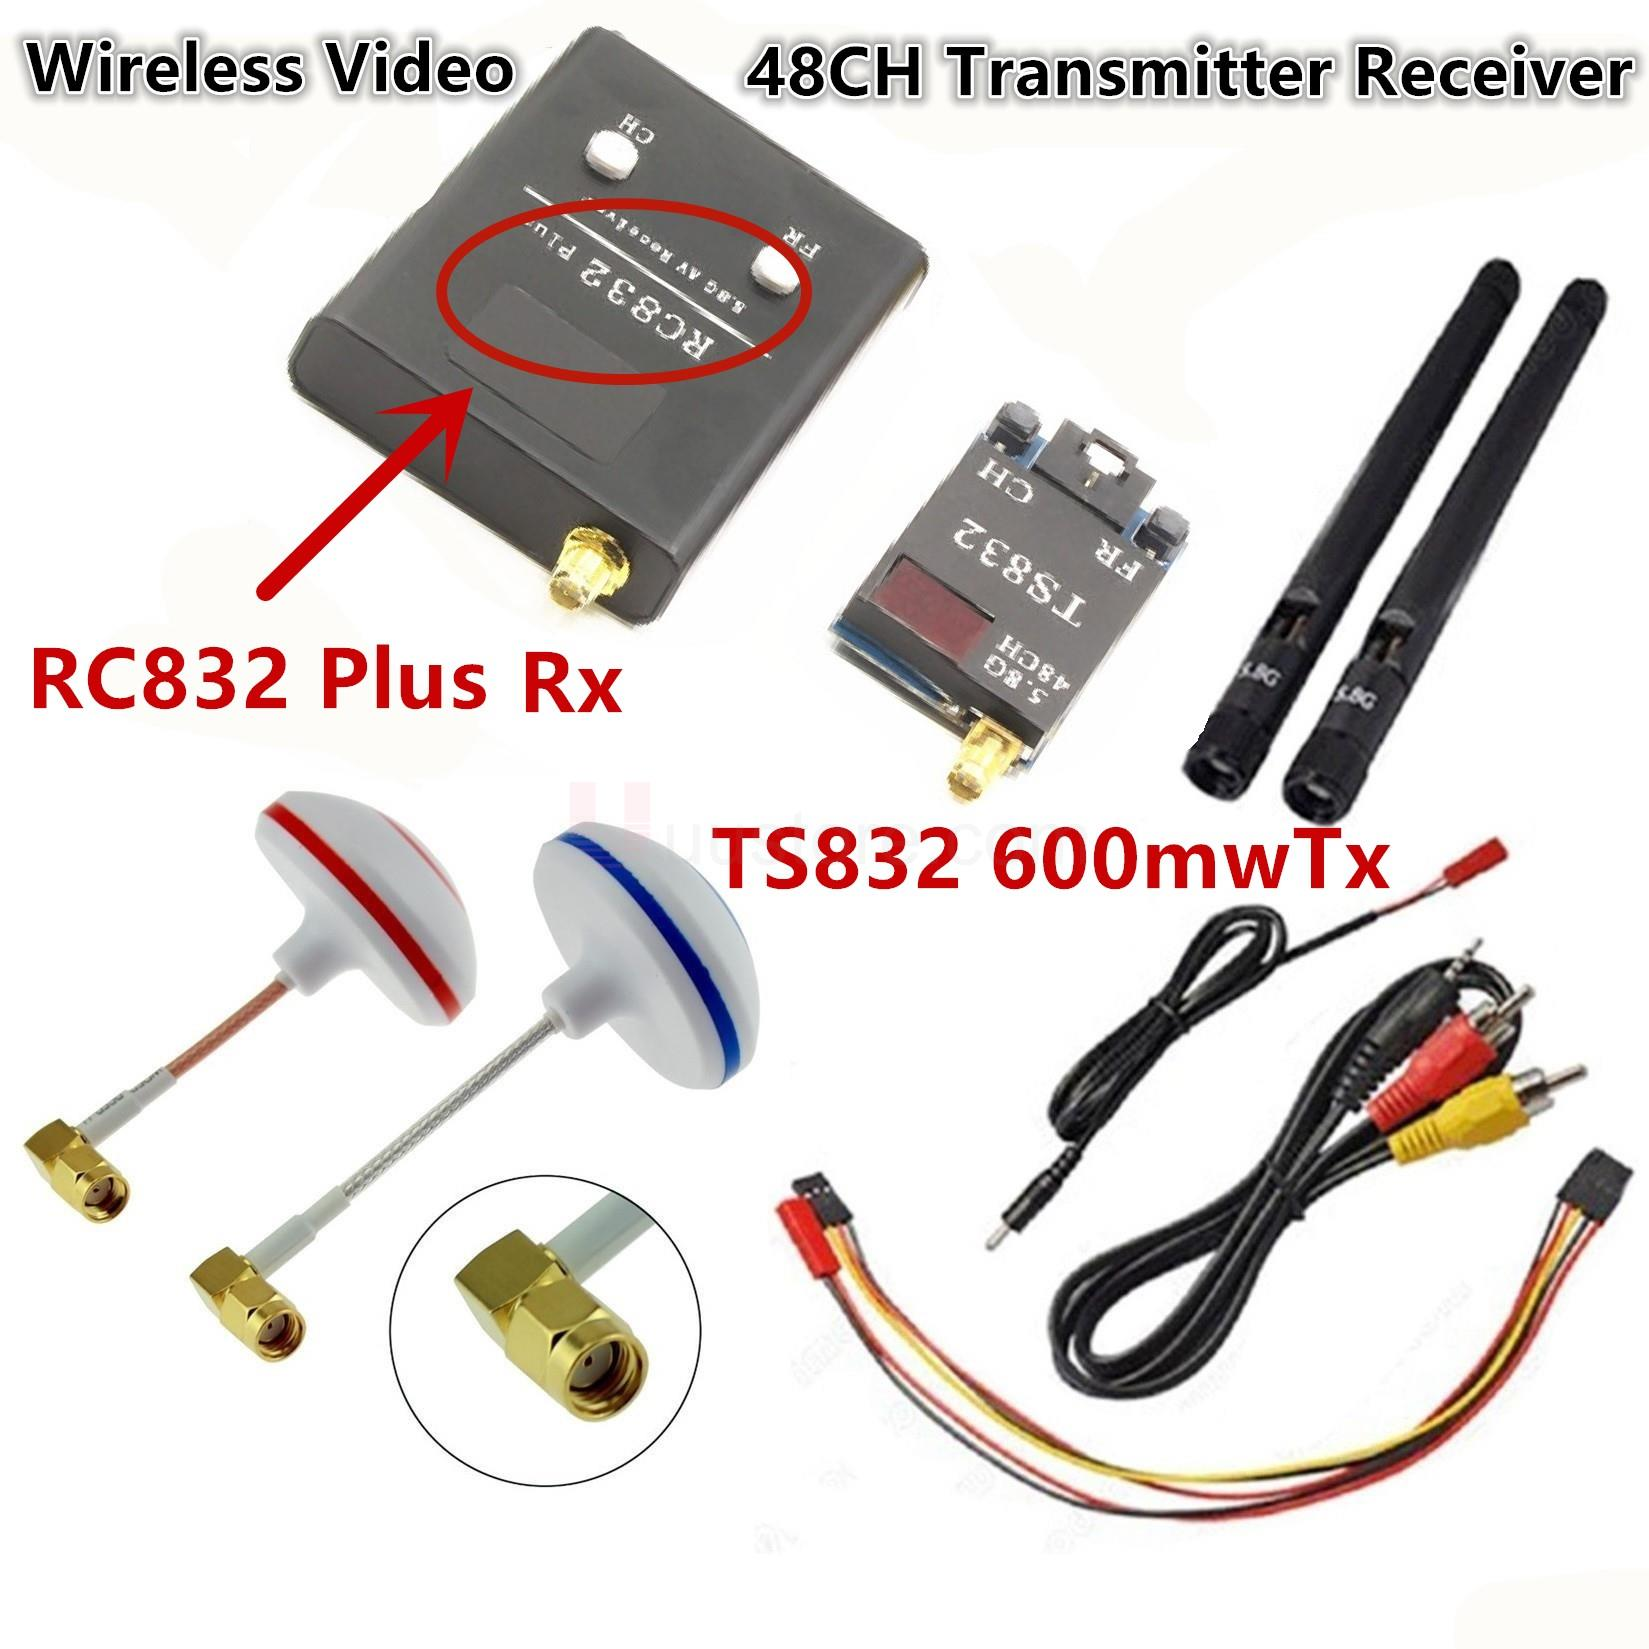 Fsth9x 2 4ghz 9ch 3 Lcd Tx Transmitter Rx Receiver Radio Control System 8 X Aa Kopen furthermore Mcu3 also Problem With Ht12e And Ht12d furthermore Ferngesteuerte Autos Fur Kleinkinder besides 24 1 Elegoo Arduino Project Smart Robot Car Kit Four Wheel Drives. on tx rx remote control car